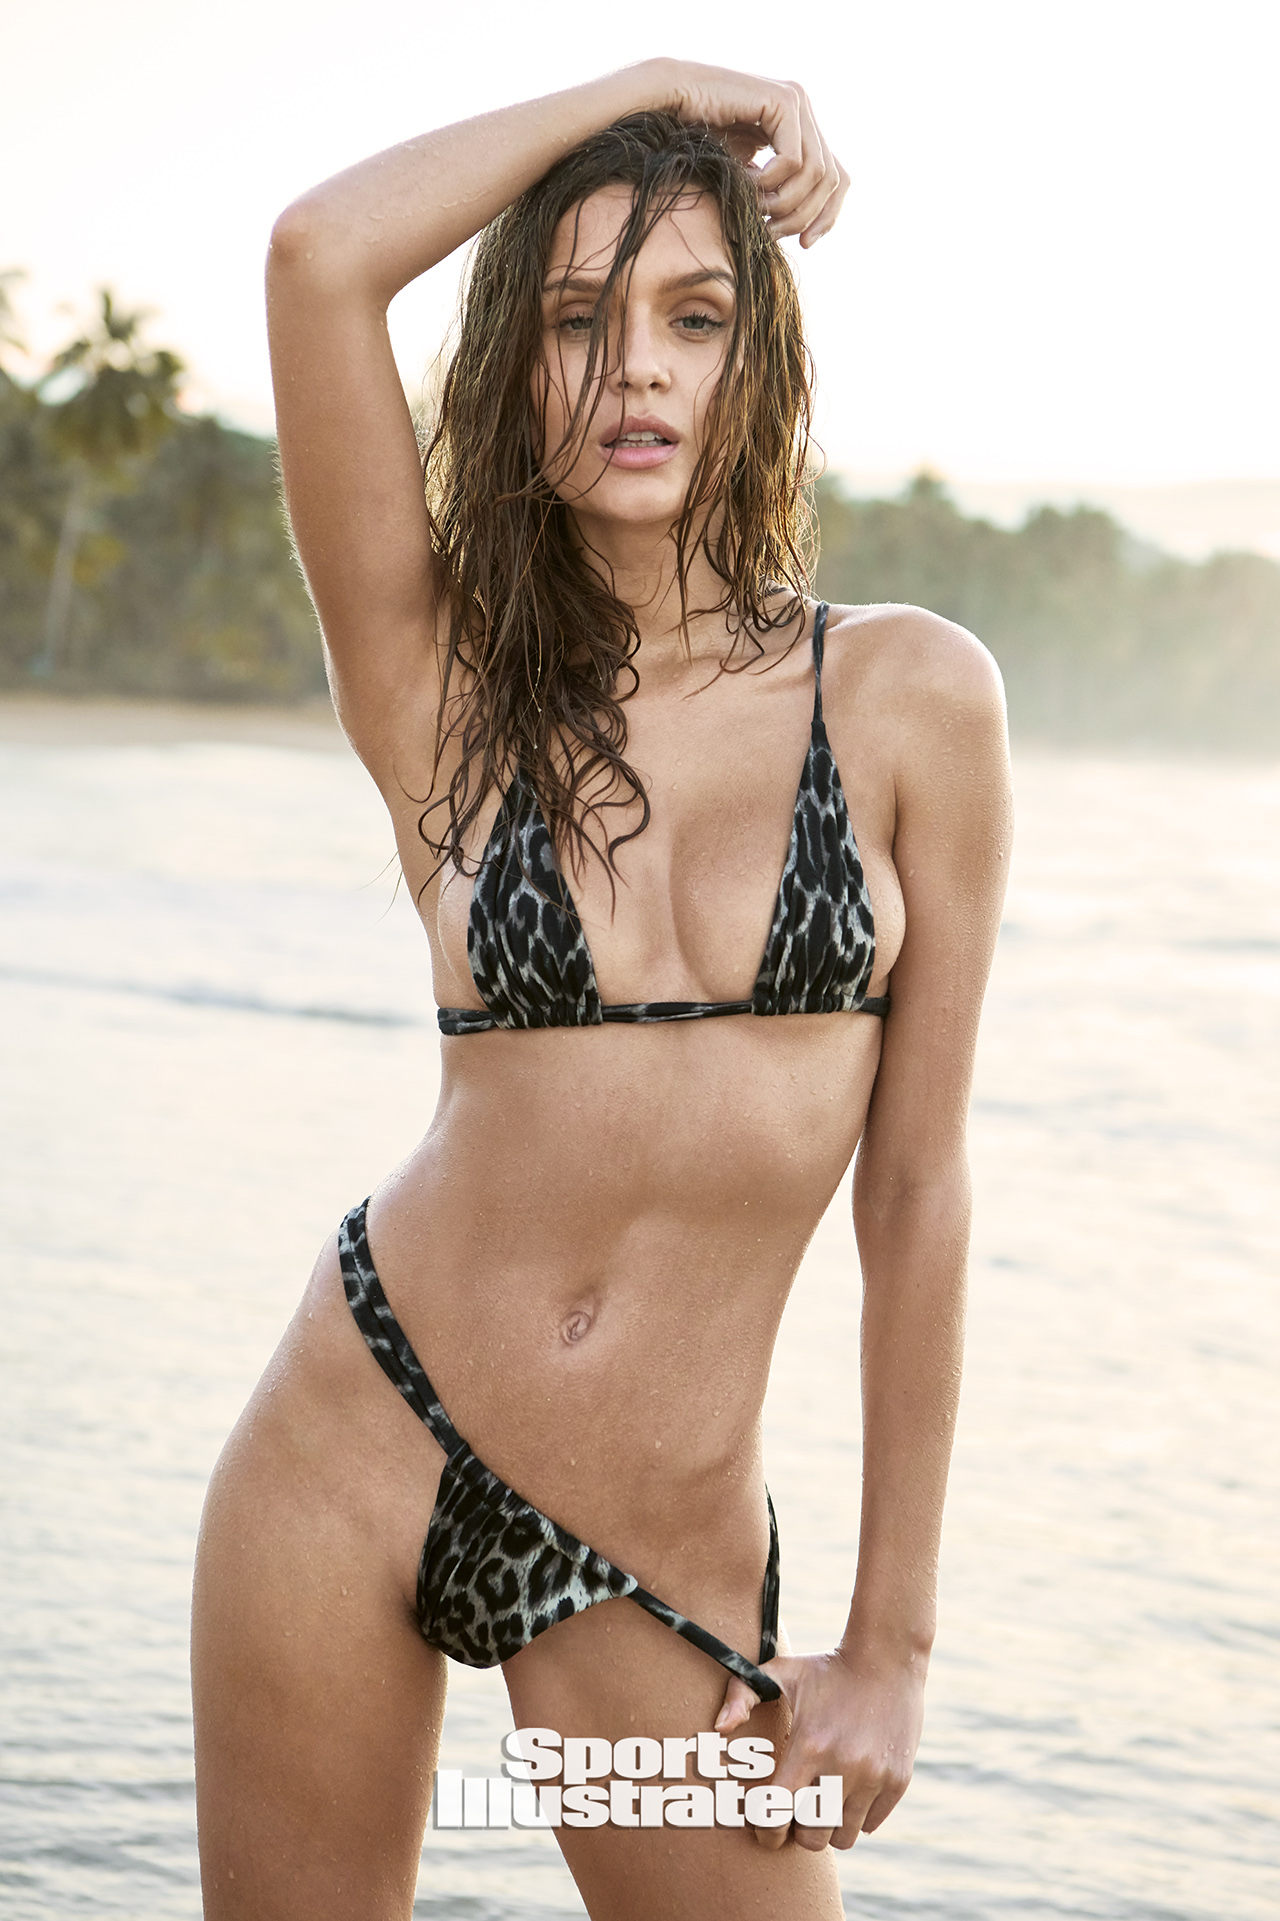 Josephine Skriver - Sports Illustrated Swimsuit (2020)